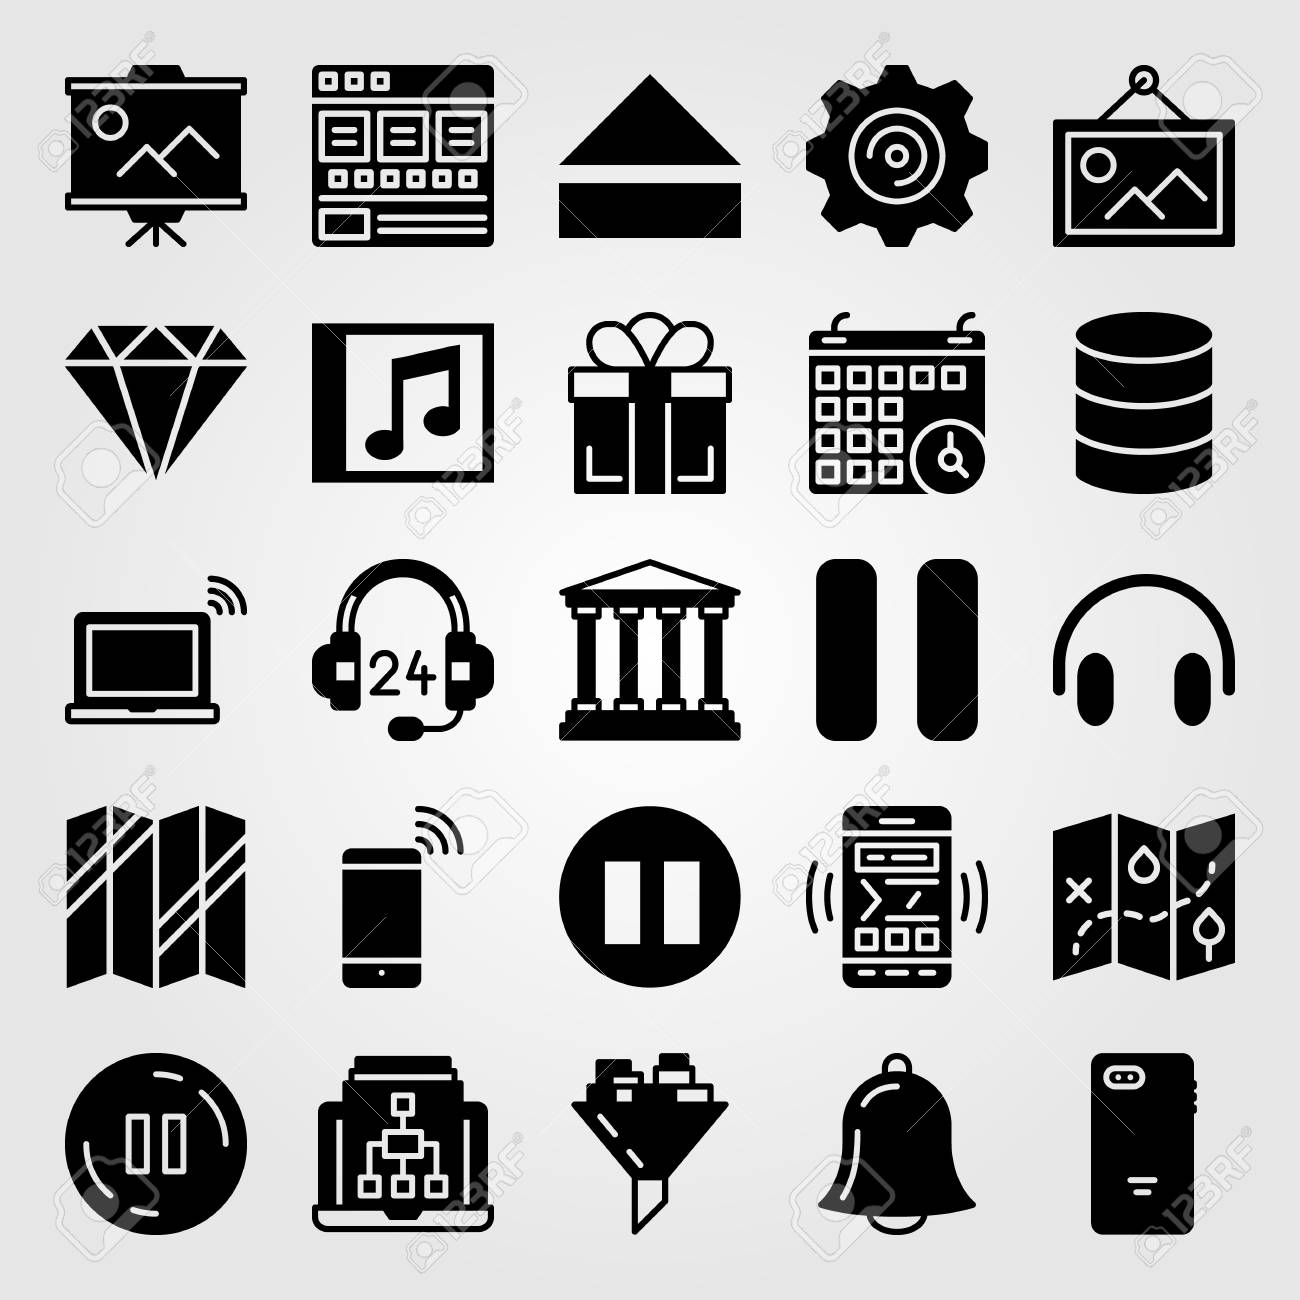 Essentials icon set vector  Calendar, laptop, browser and database